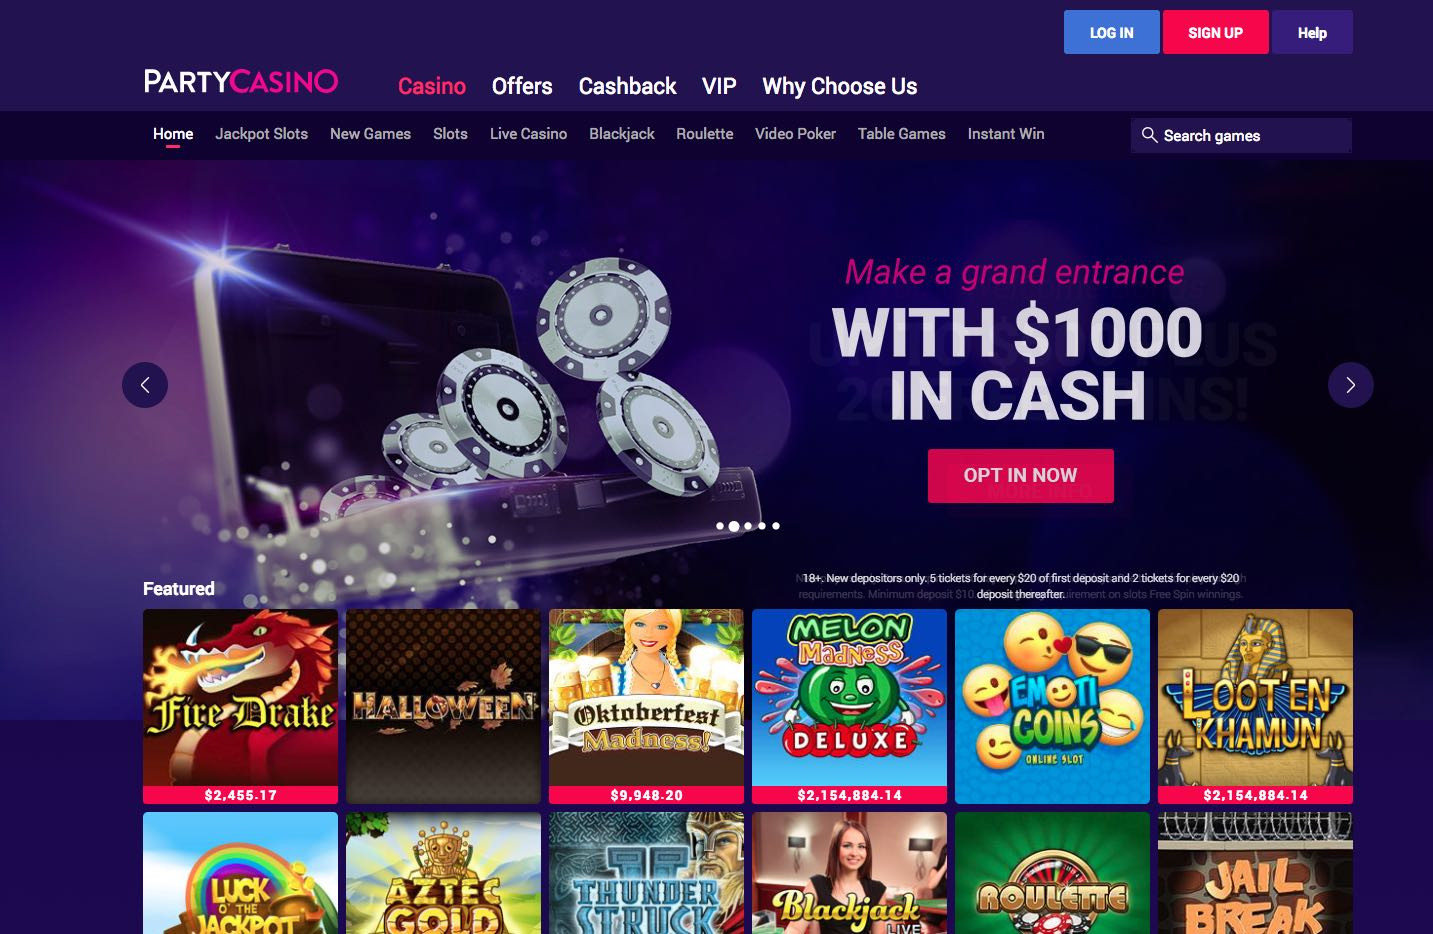 British spins casino review 2020 up to 500 free spins